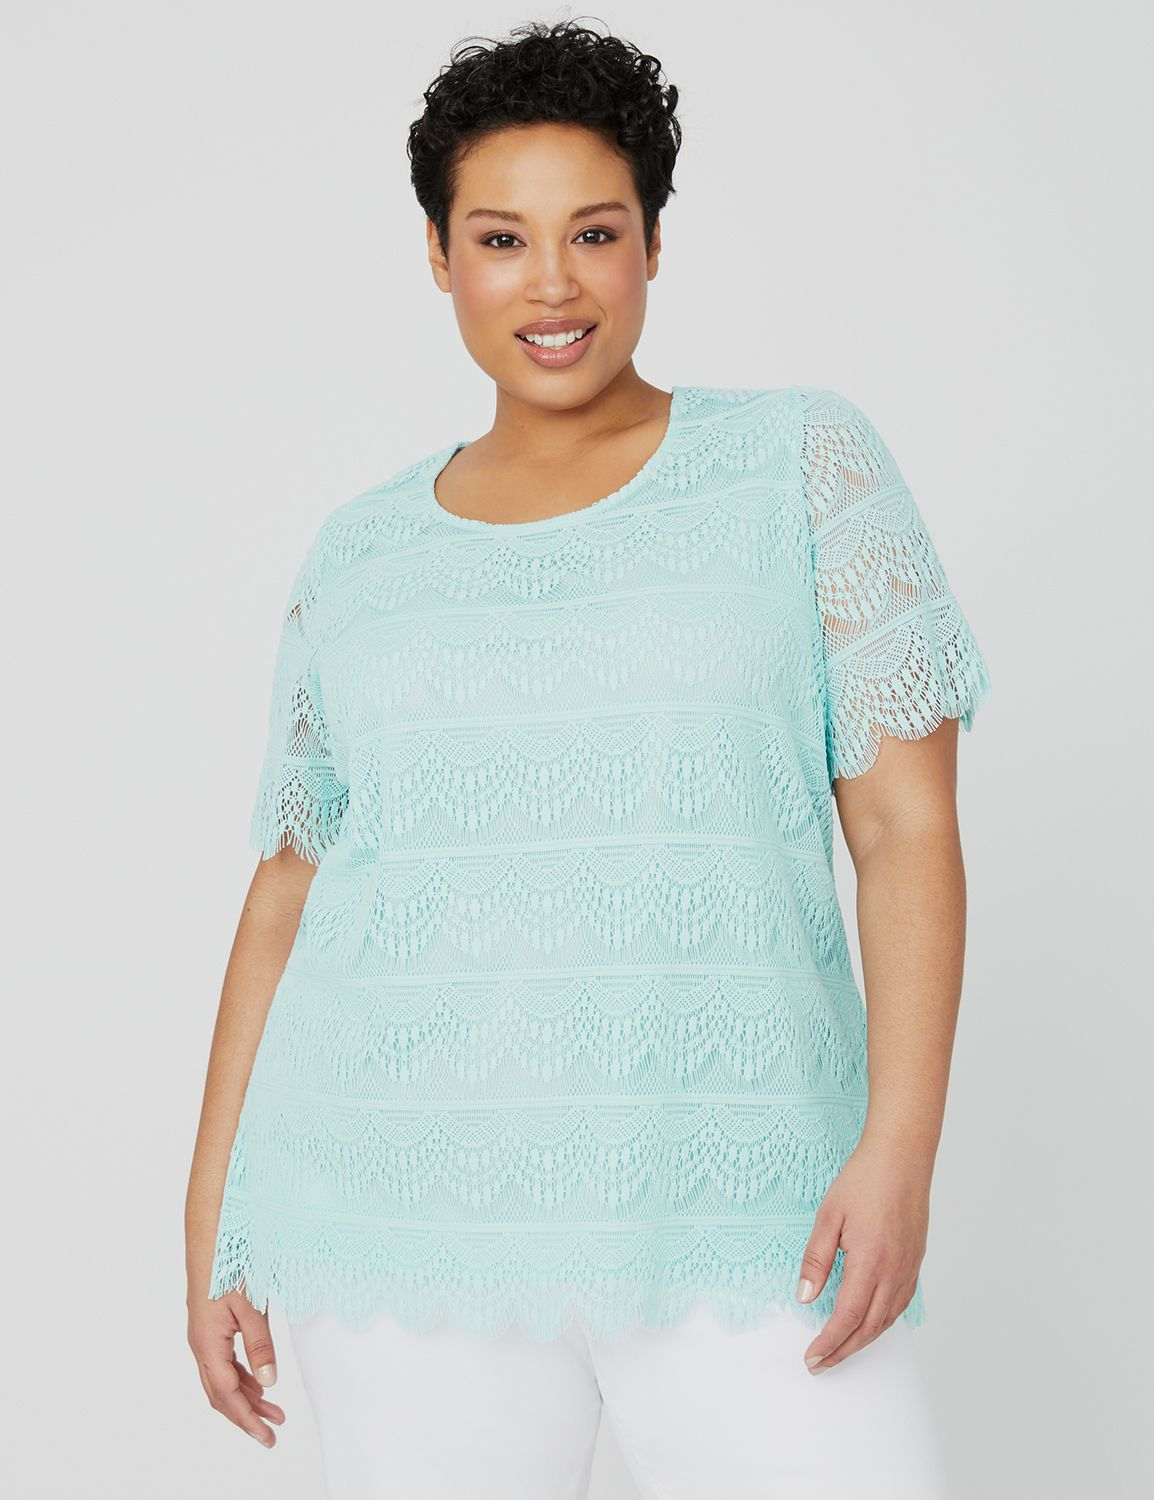 Waves of Lace Top 1087830 SCALLOP EDGE ALLOVER LACE MP-300100096